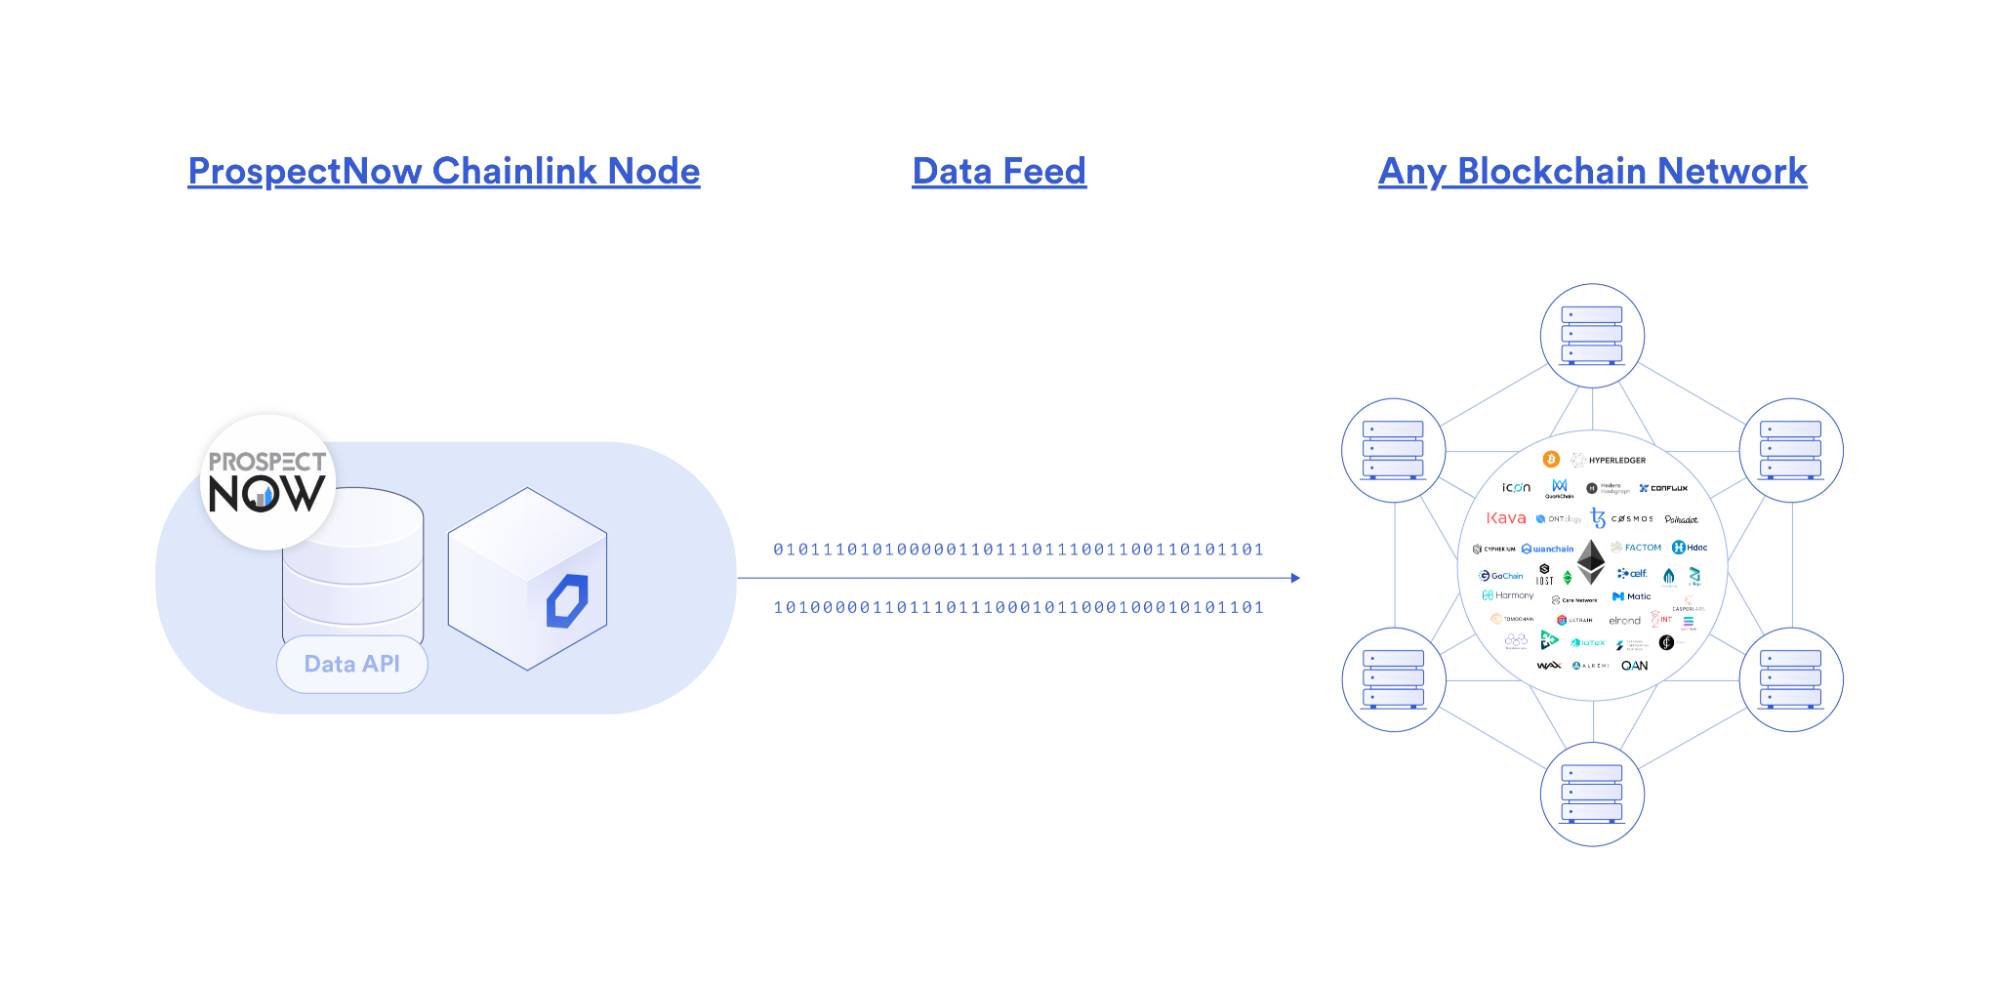 The ProspectNow Chainlink Node